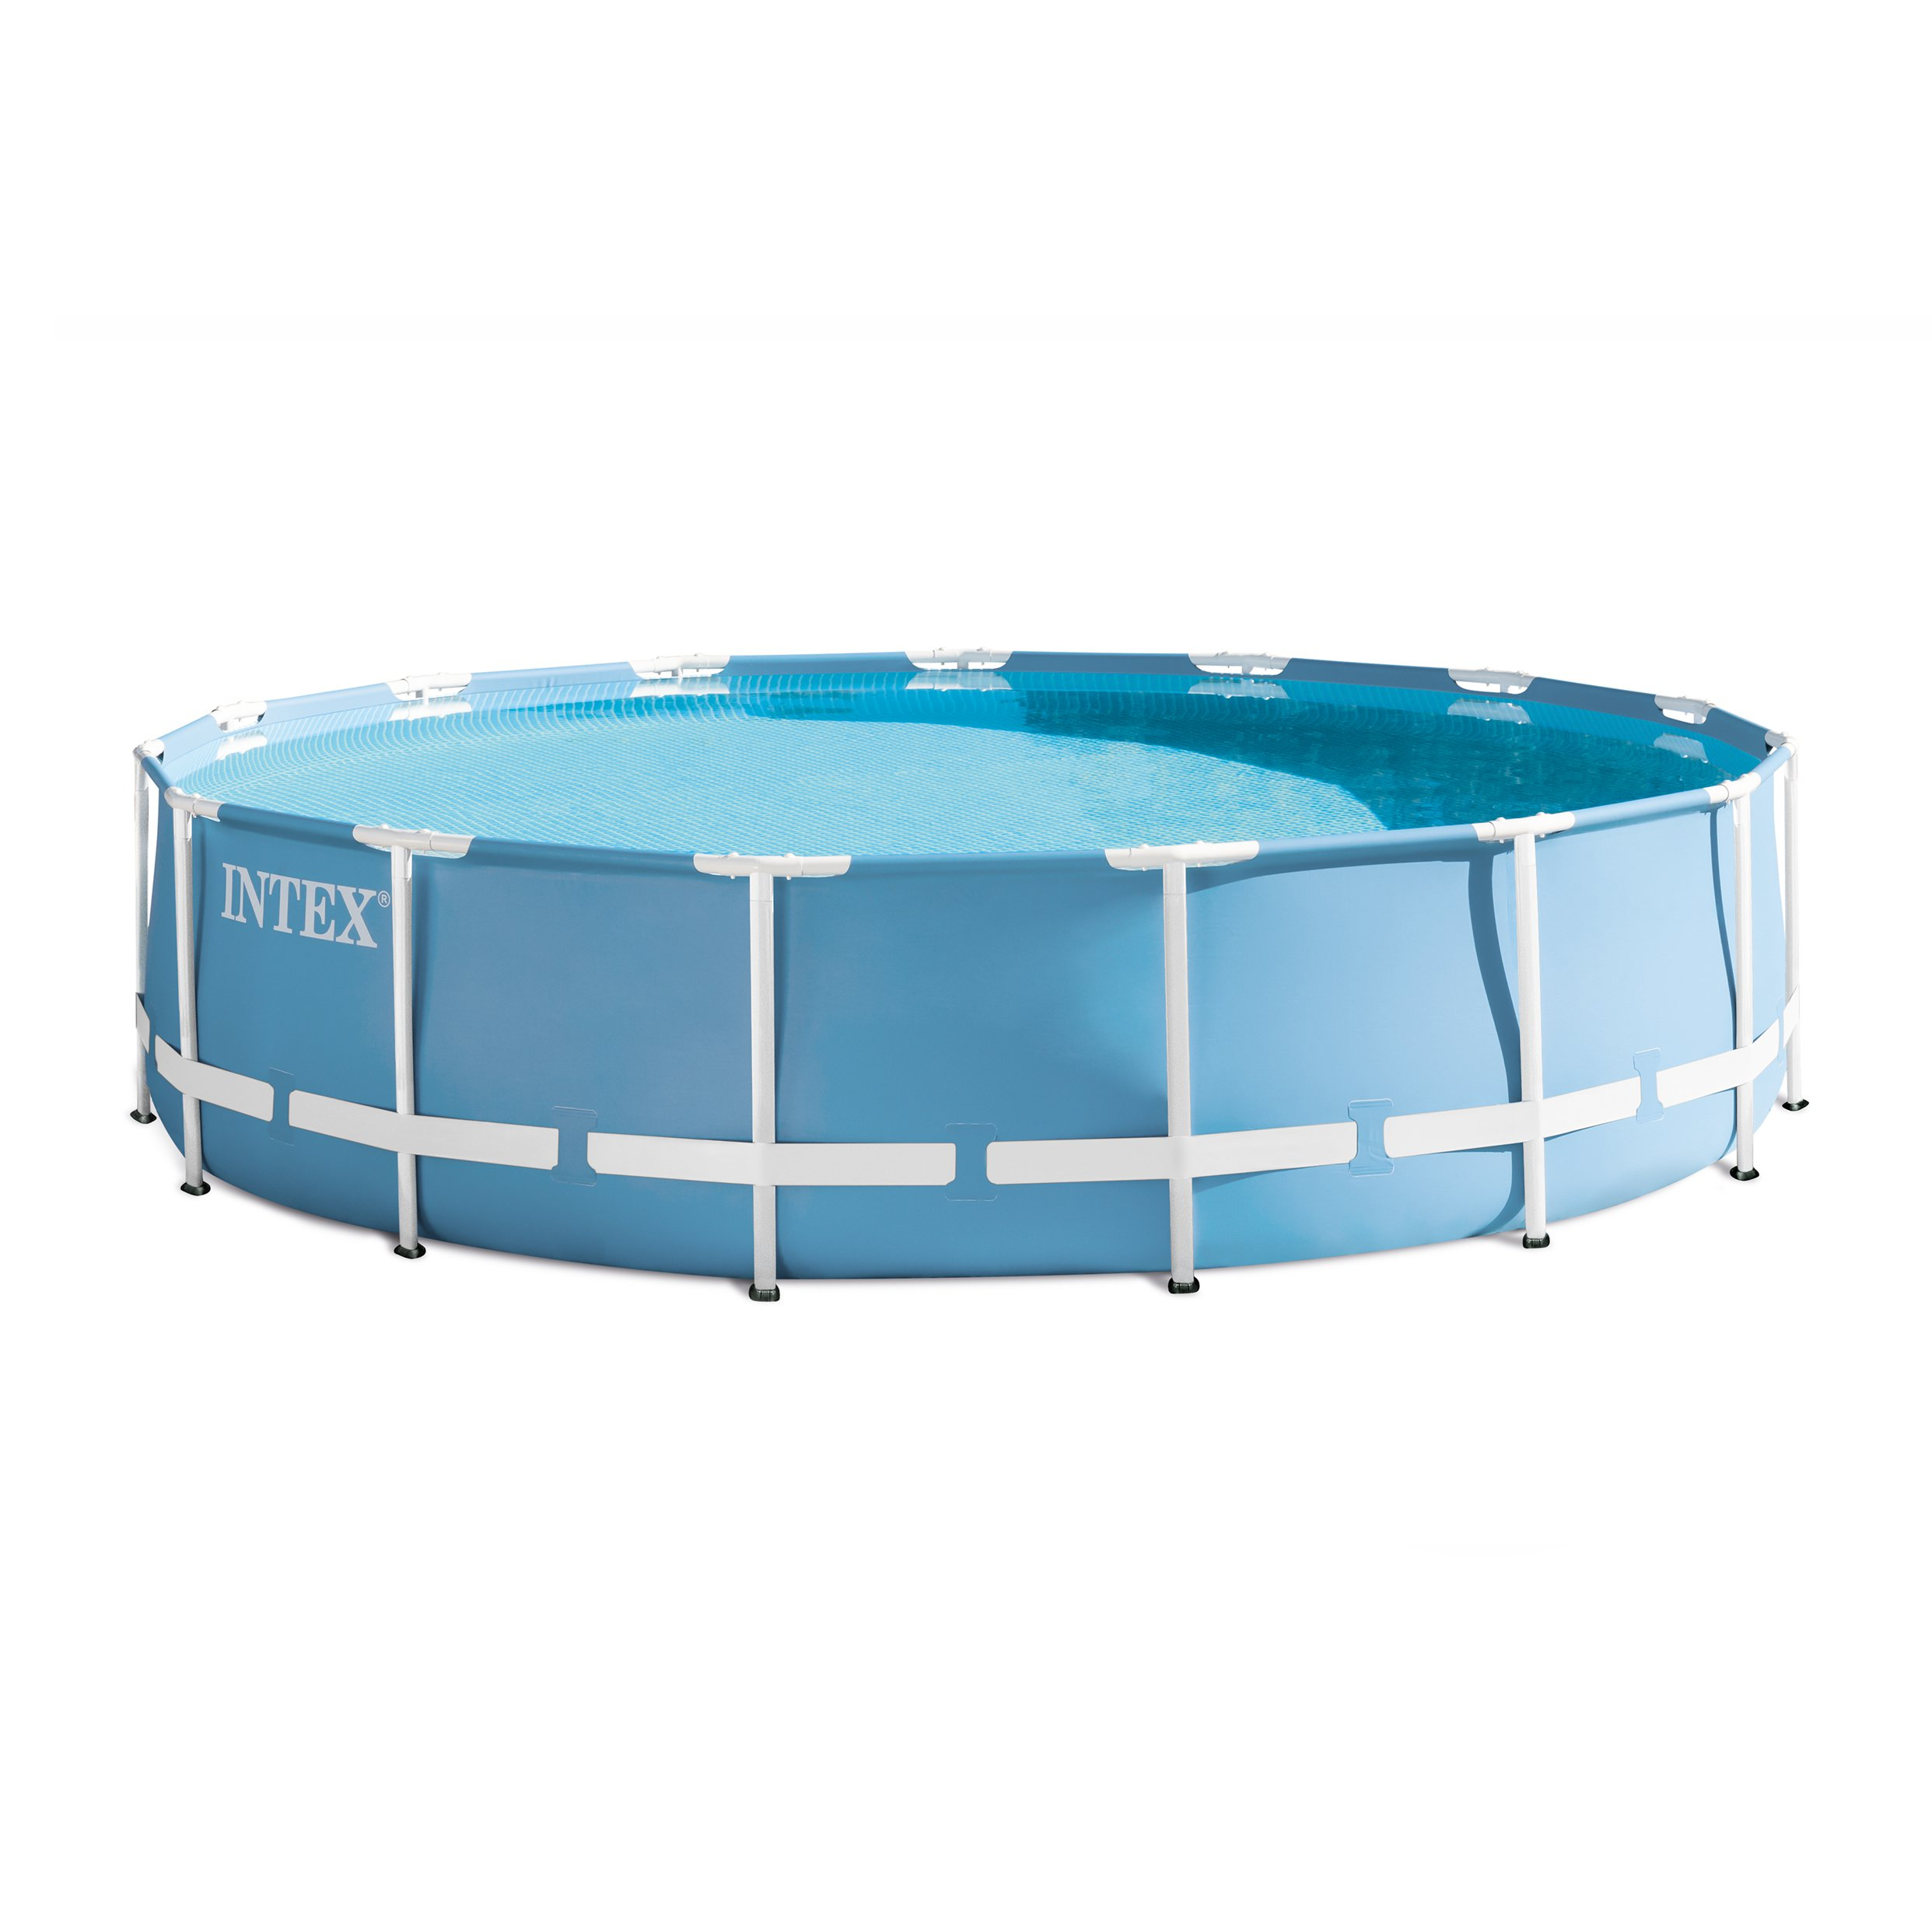 15'x33 Prism Frame Pool Set by Above Ground Pools